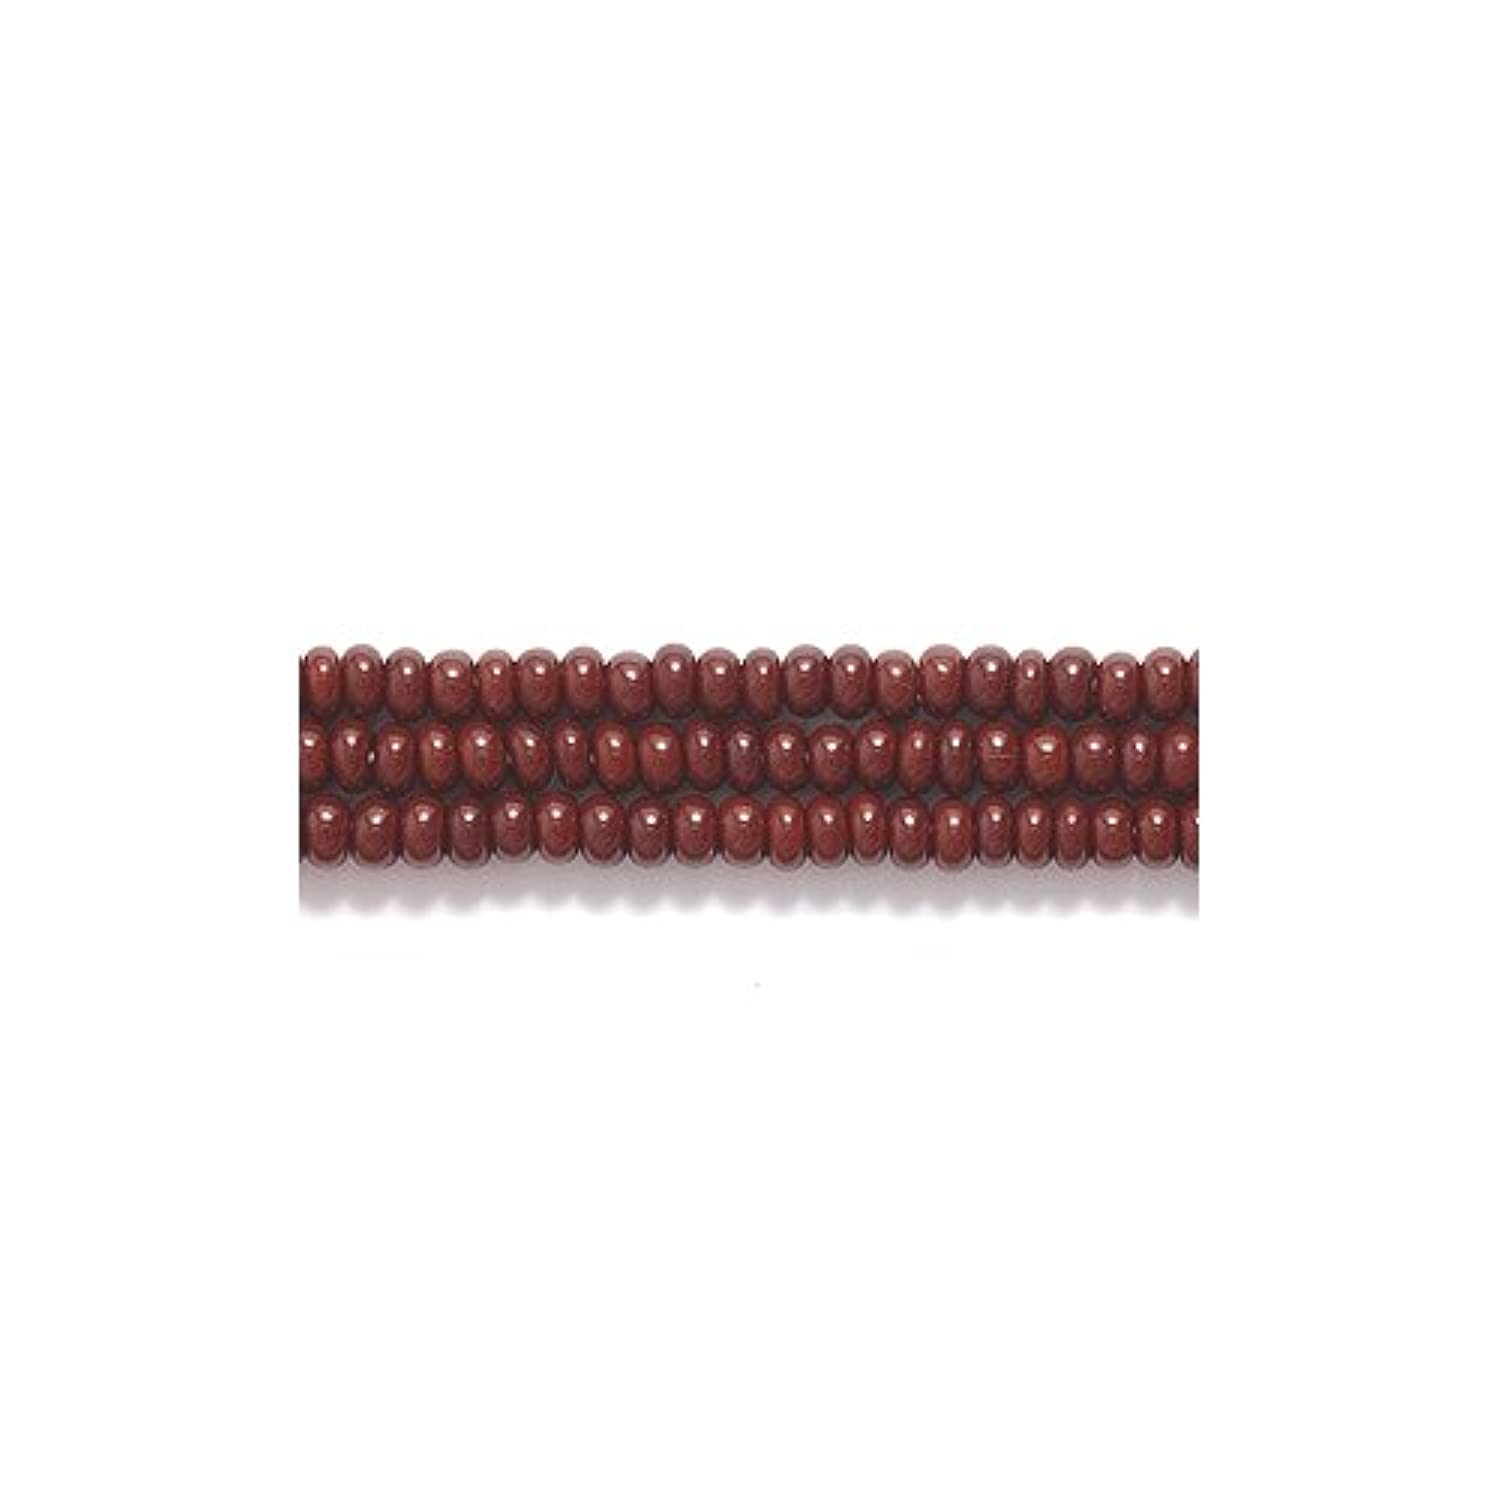 Preciosa Ornela Czech Seed Bead, Opaque Chocolate Brown, Size 11/0